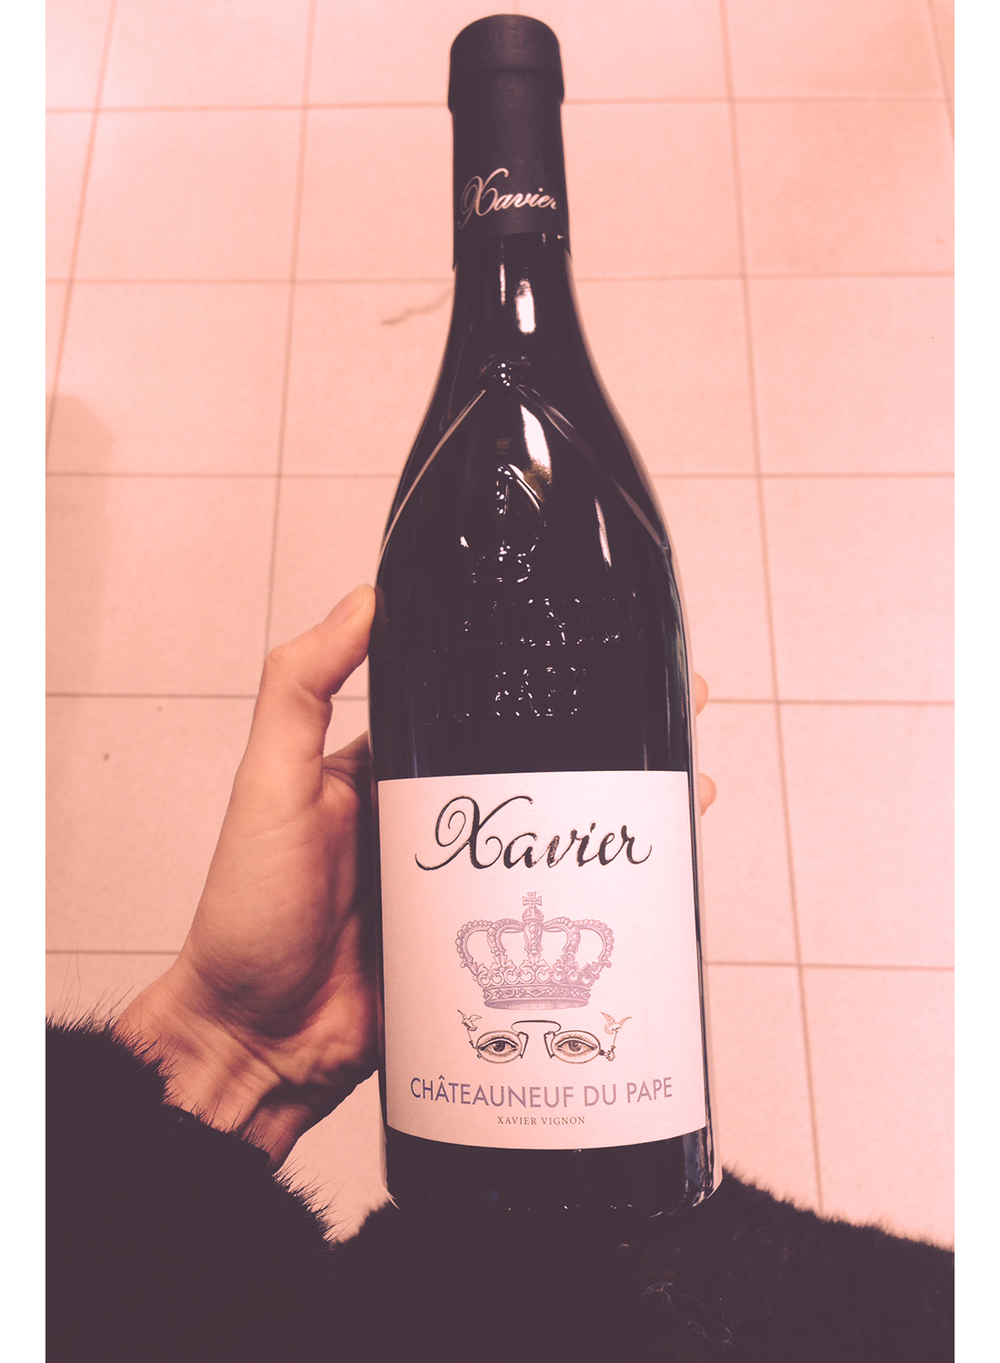 I don´t like red wine, but how pretty is this bottle and label?